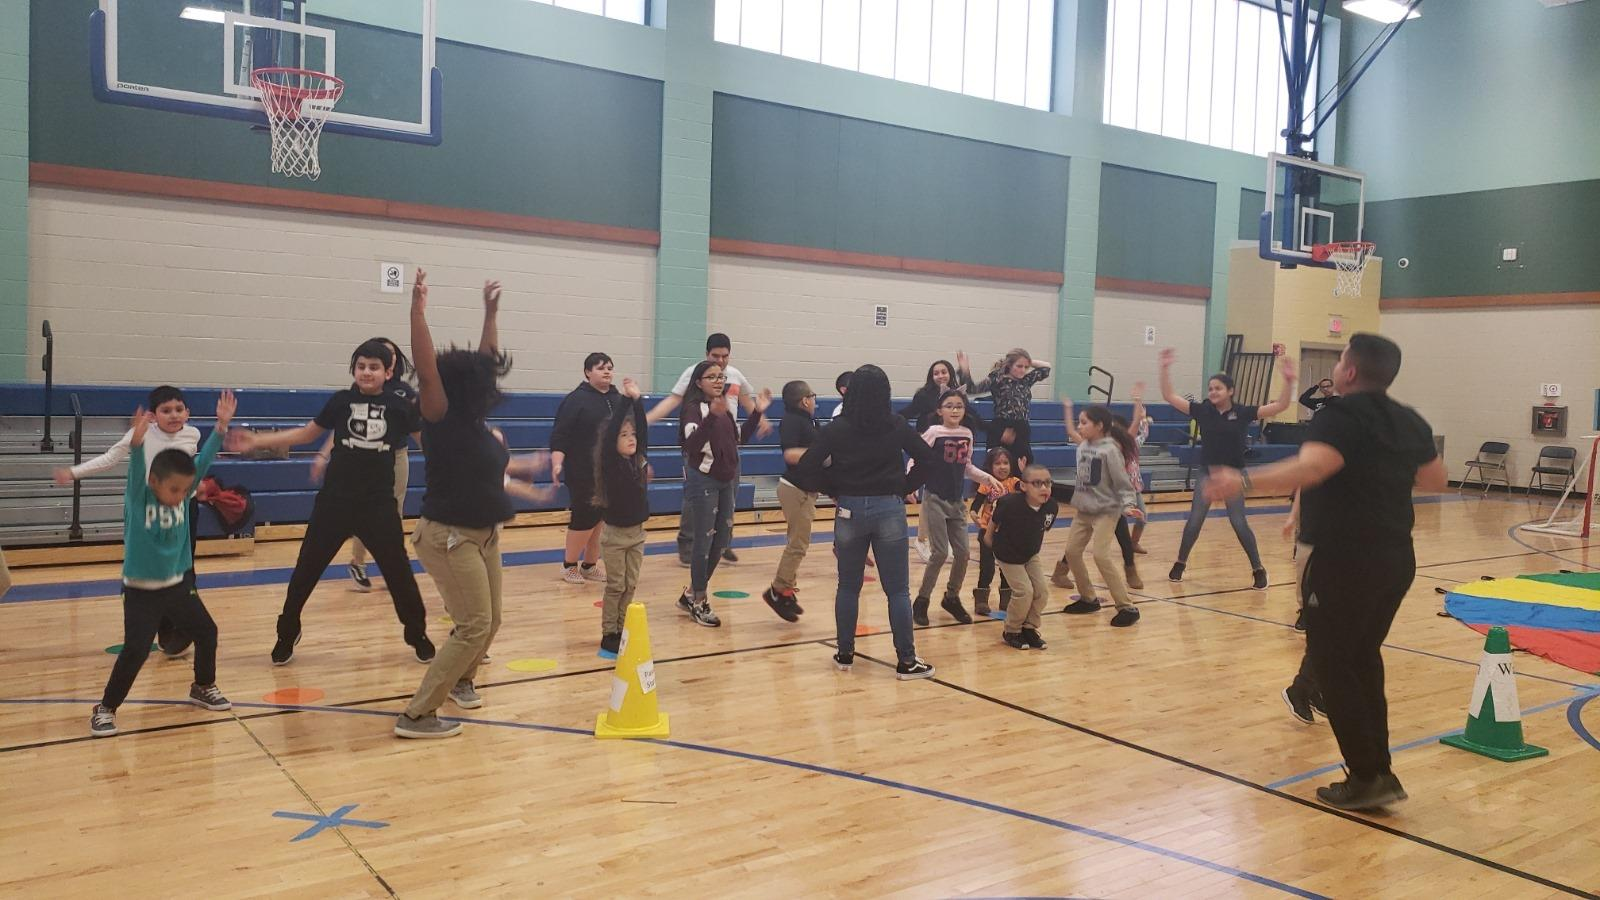 a group of children dancing and jumping up and down in the gym